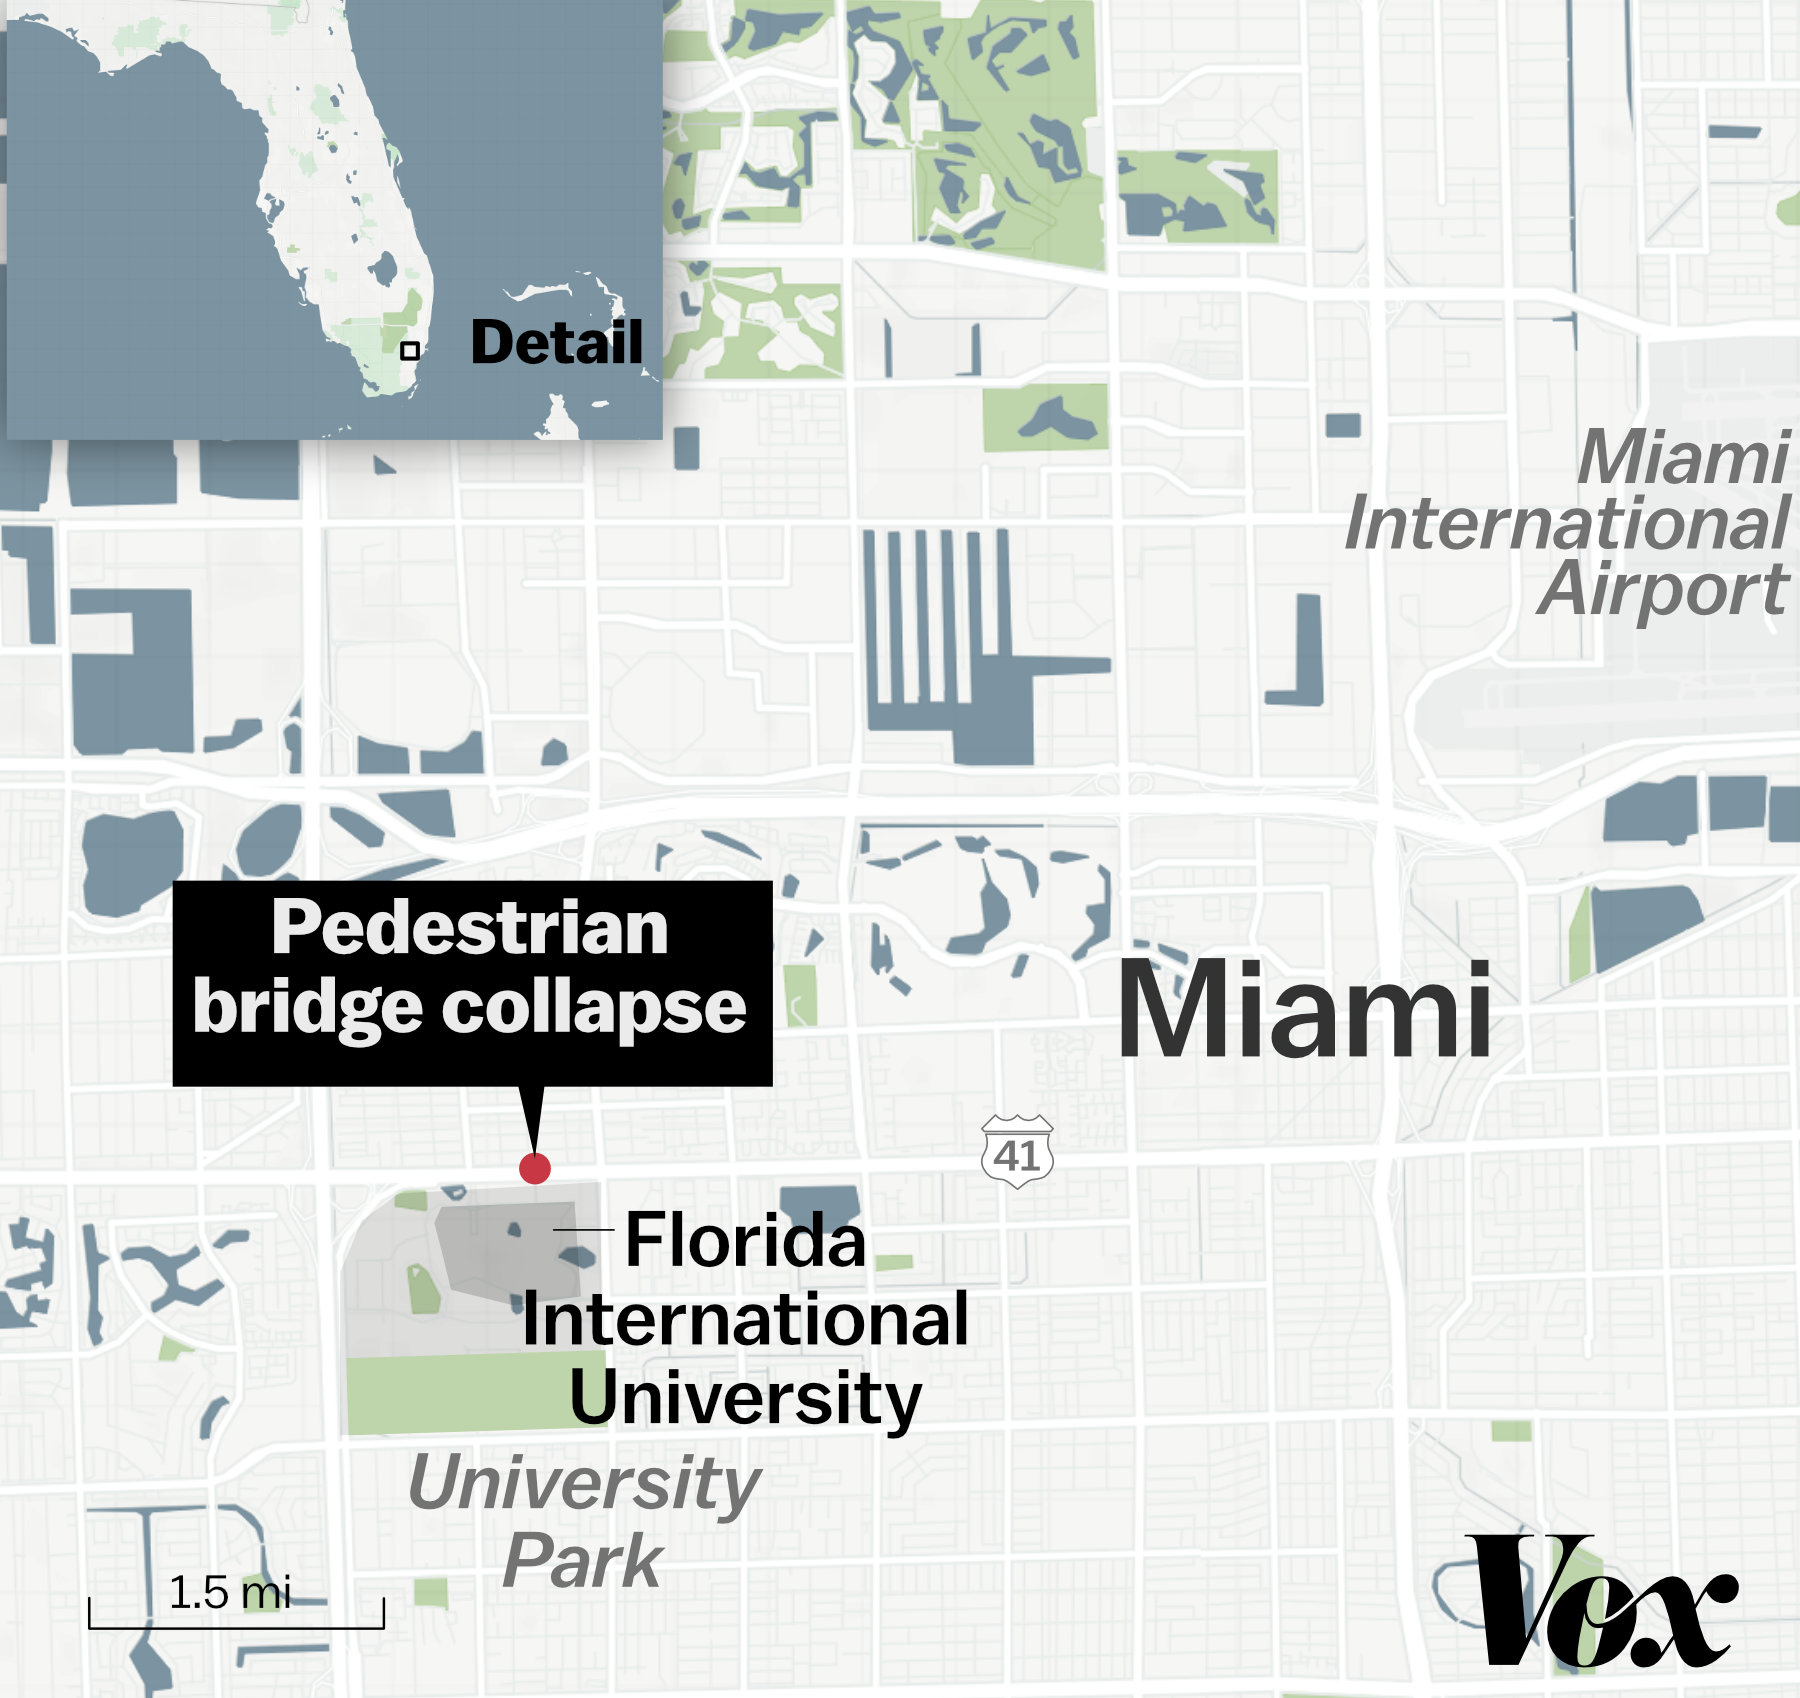 Engineer Warned of Crack in Miami Bridge Before Collapse